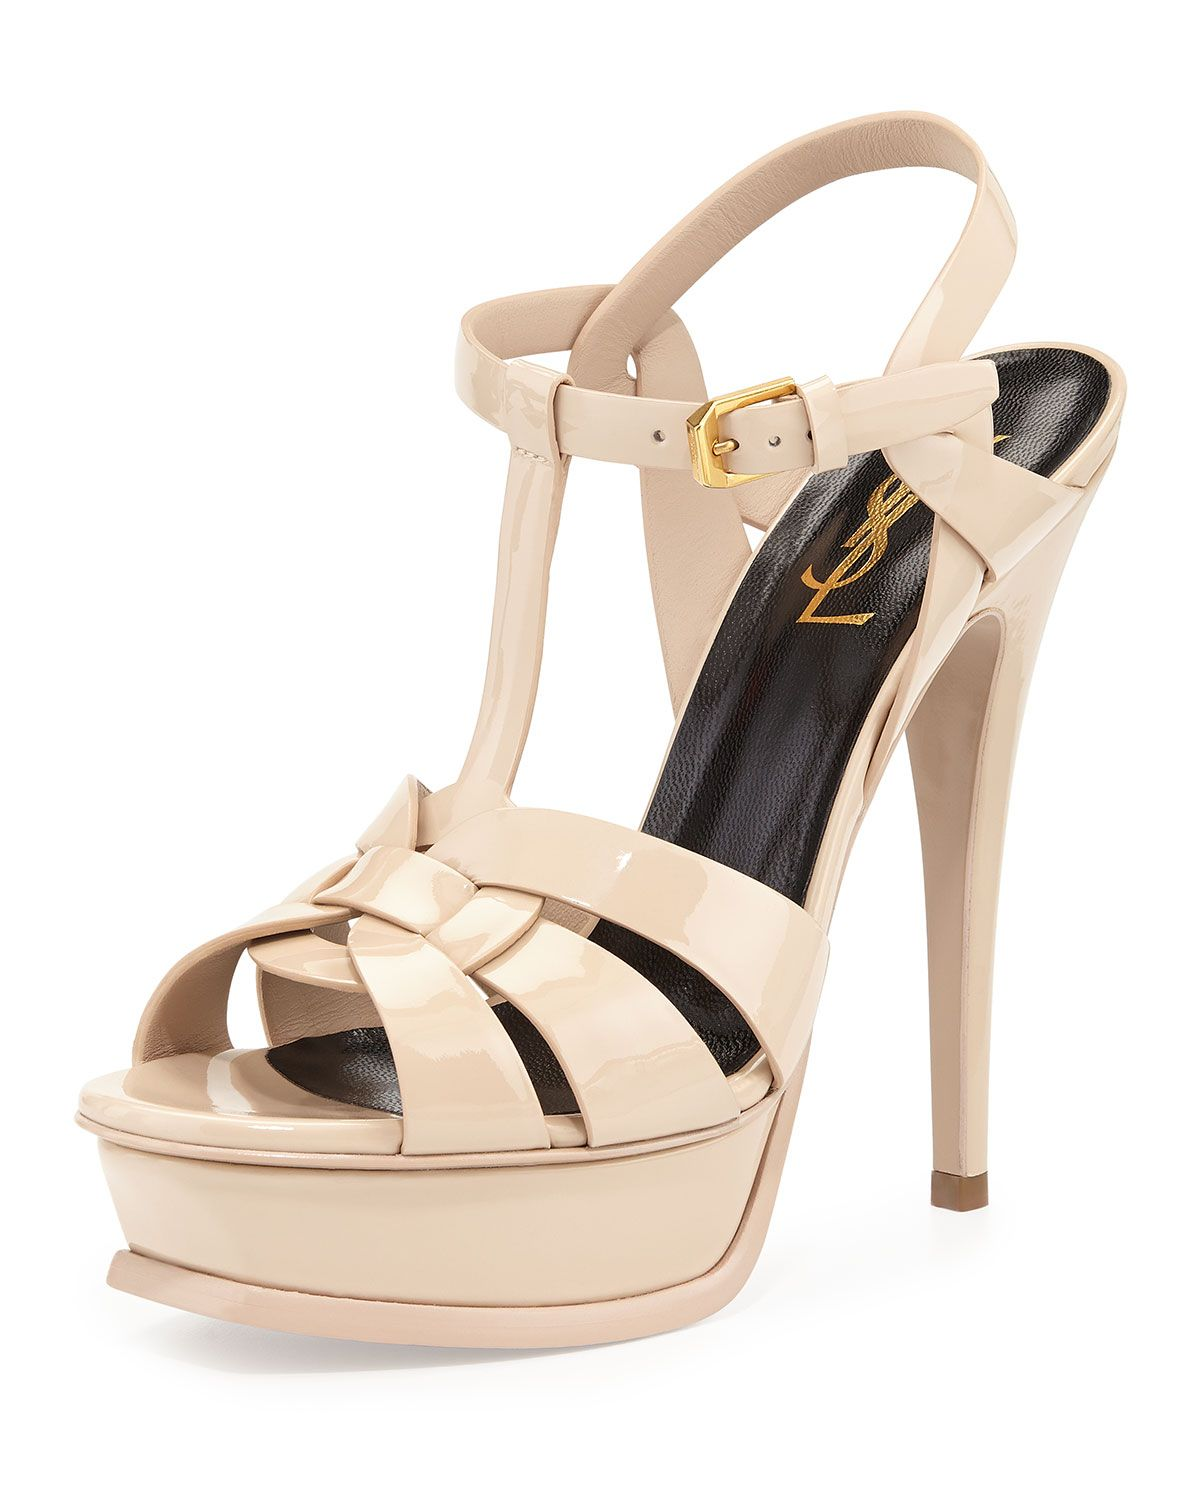 1aac8d6bed1 Yves Saint Laurent Tribute Patent Platform Sandal, Women's, Size: 35.5 EU  (5.5B US), Poudre